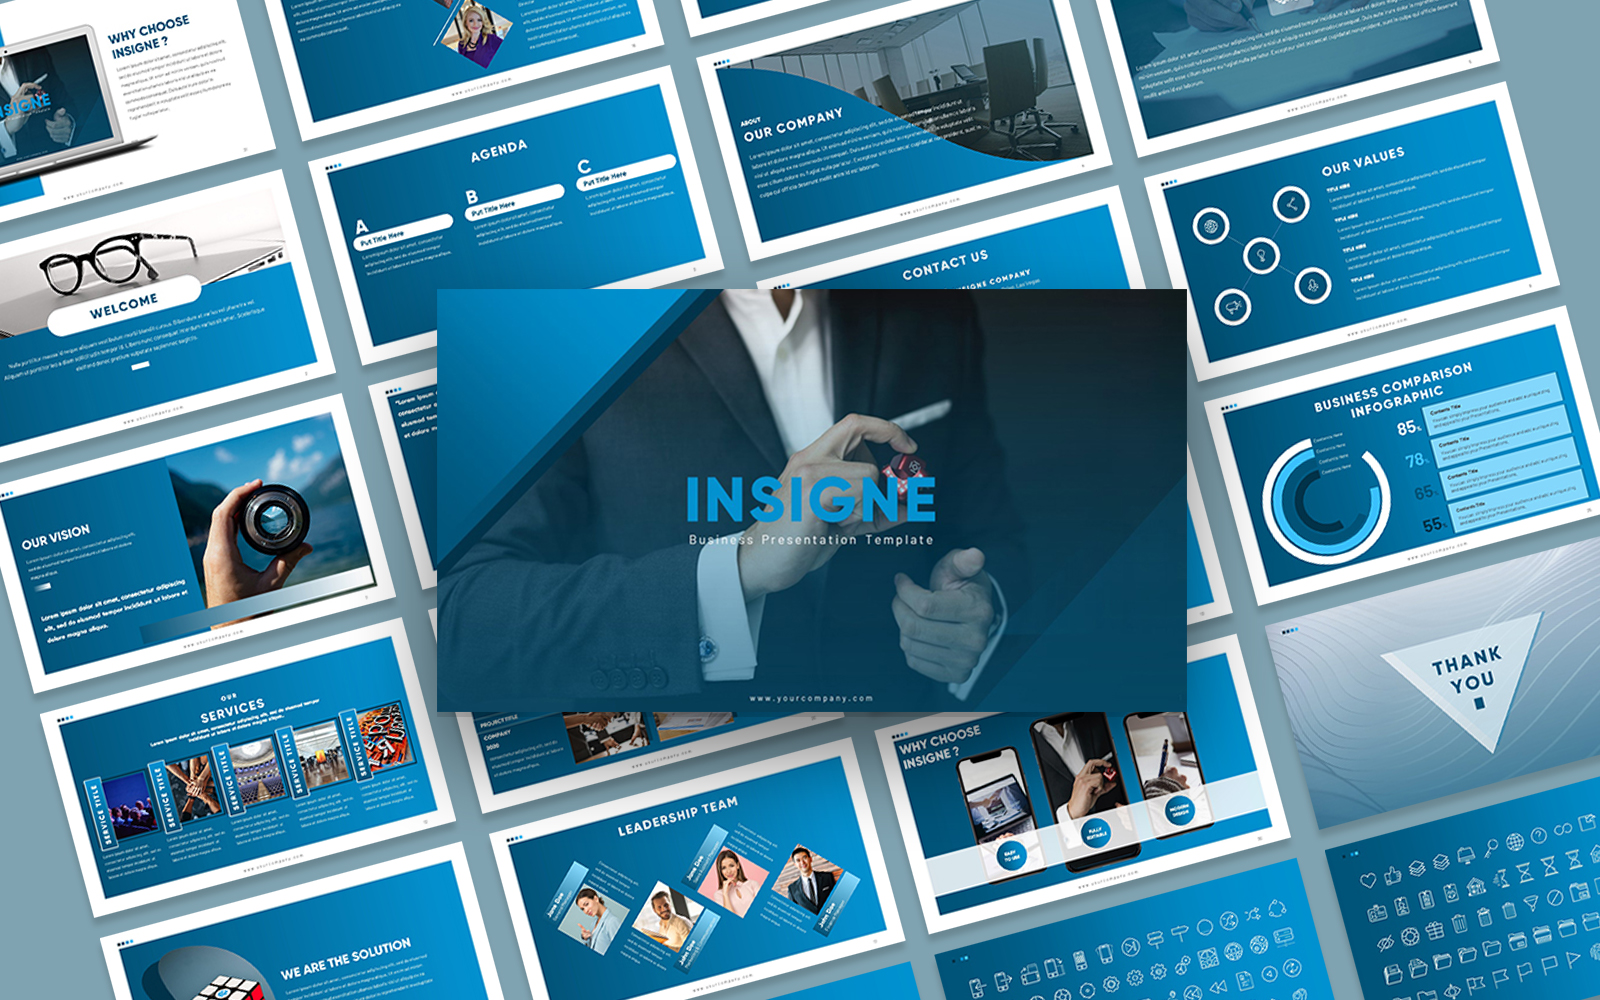 Insigne Company Presentation PowerPoint Template